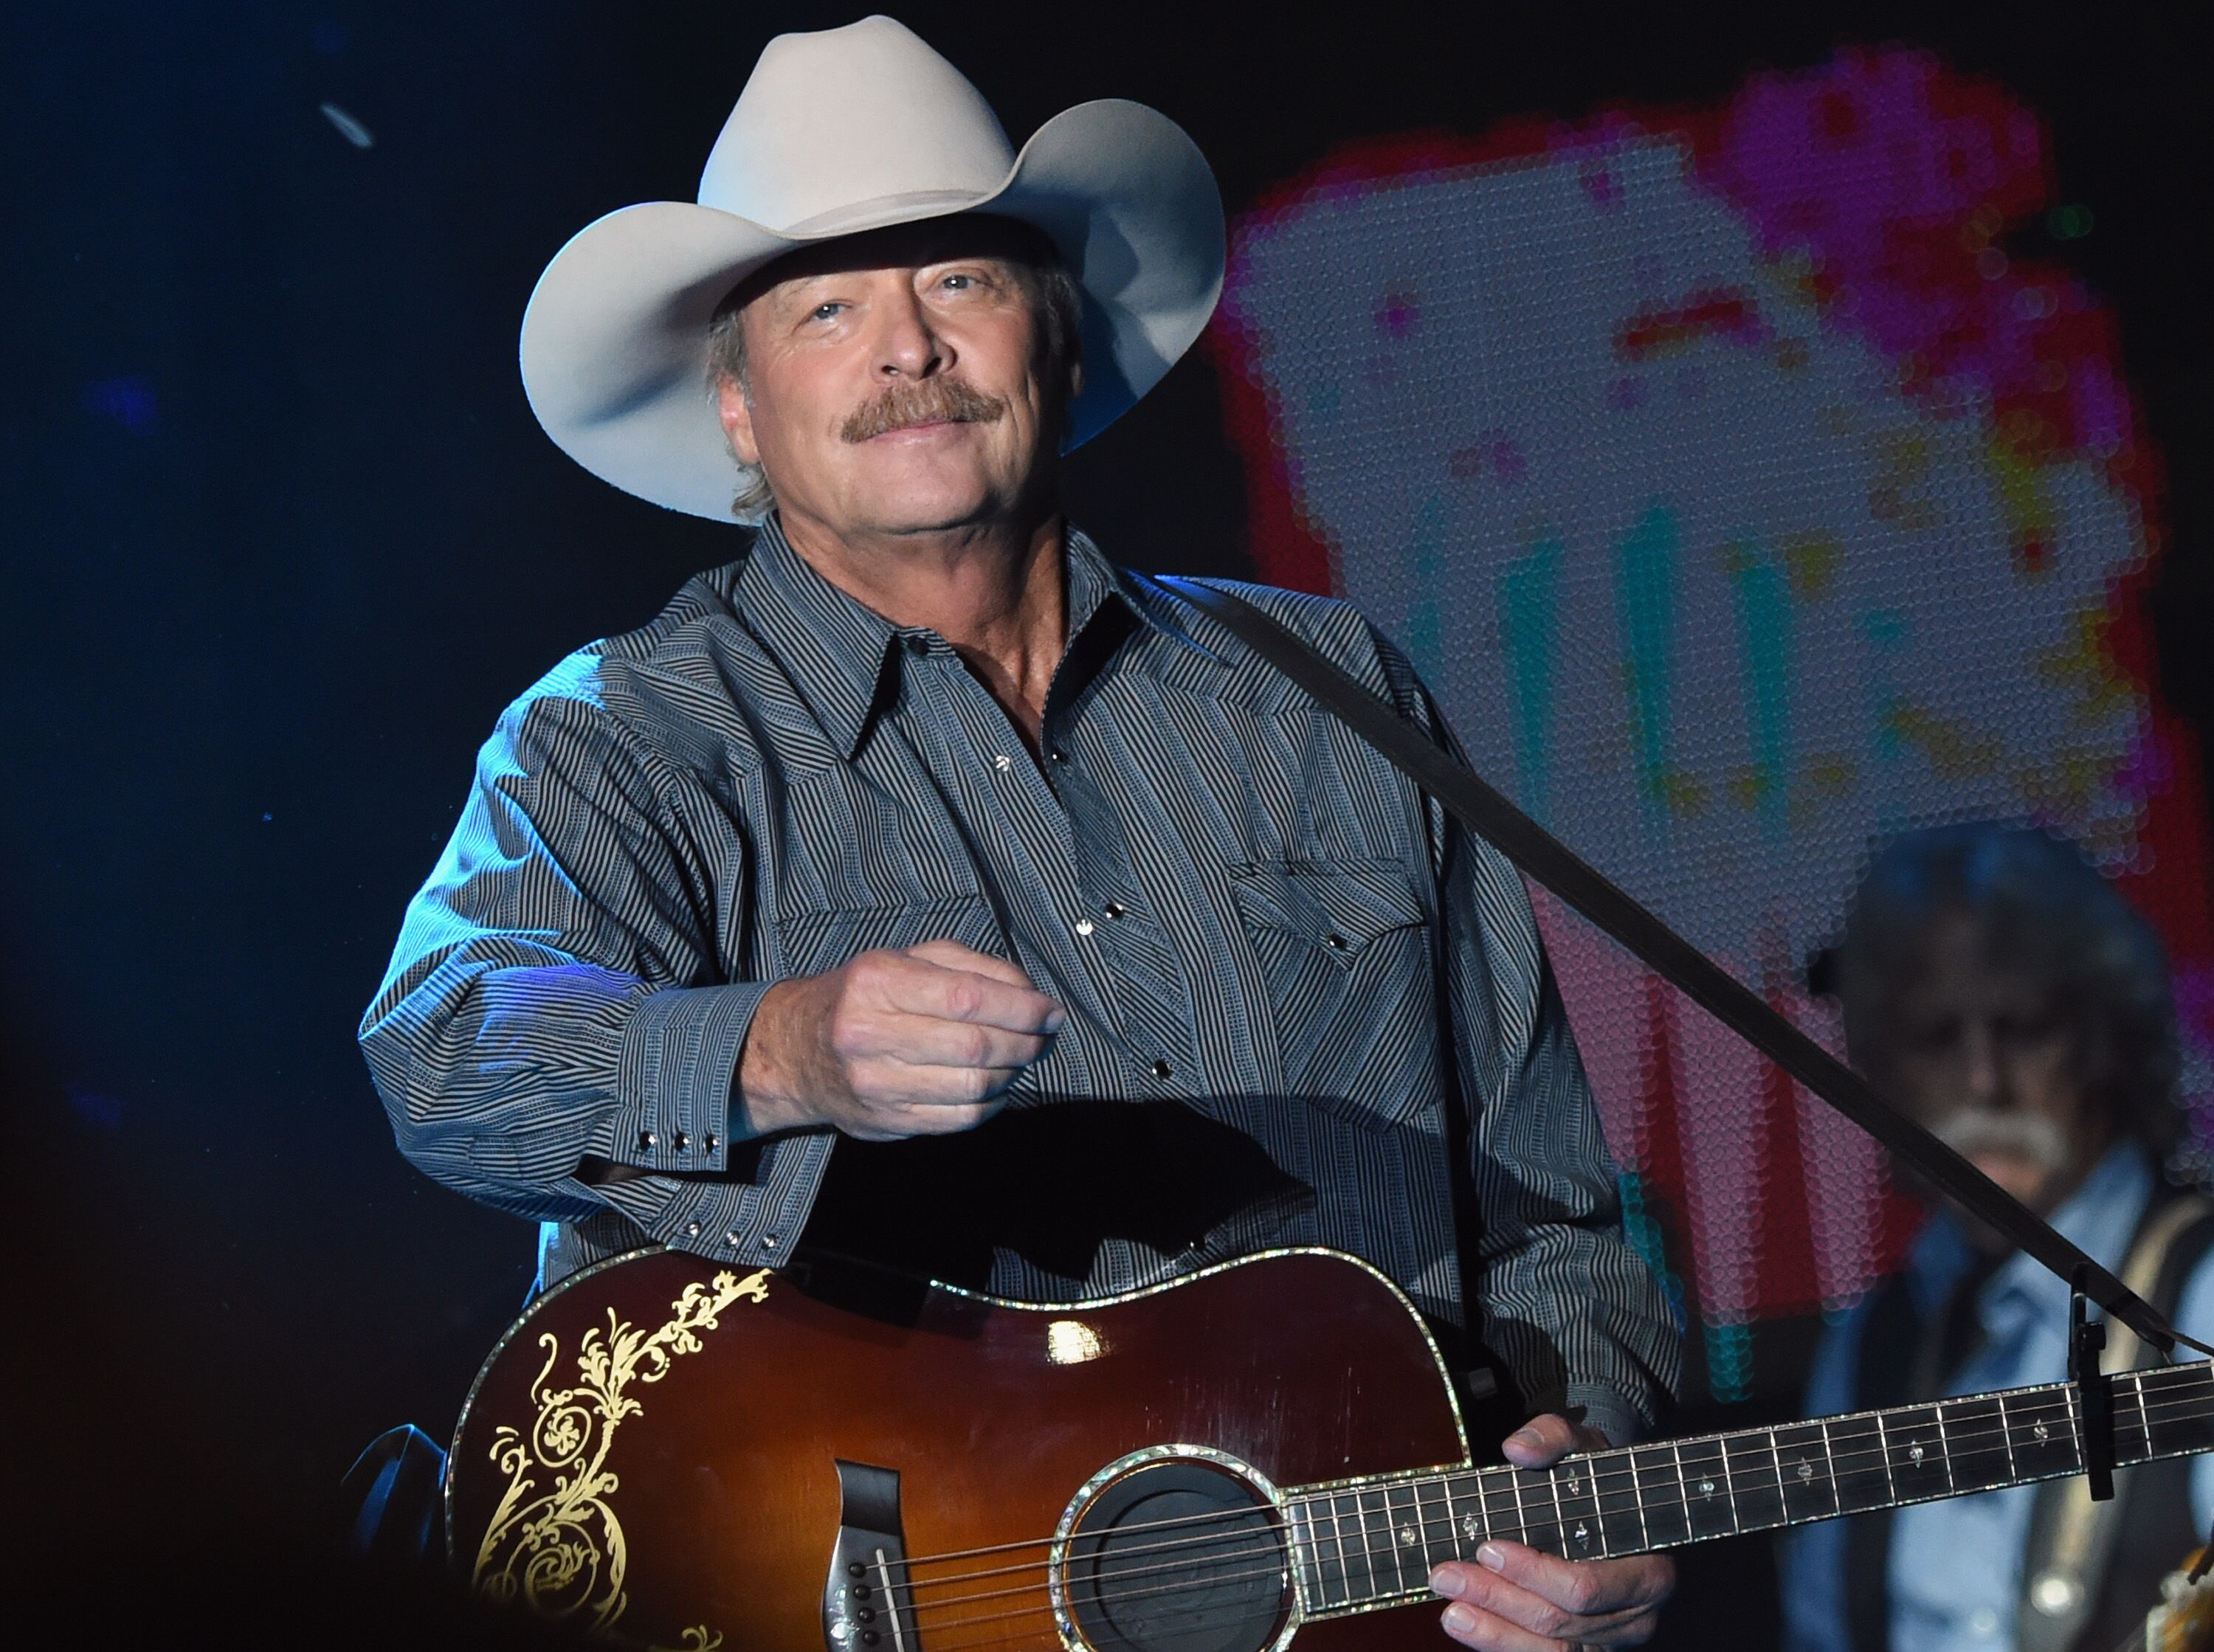 Alan Jackson performs at Tree Town Music Festival - Day 3 on May 27, 2017 in Heritage Park, Forest City, Iowa. | Source: Getty Images